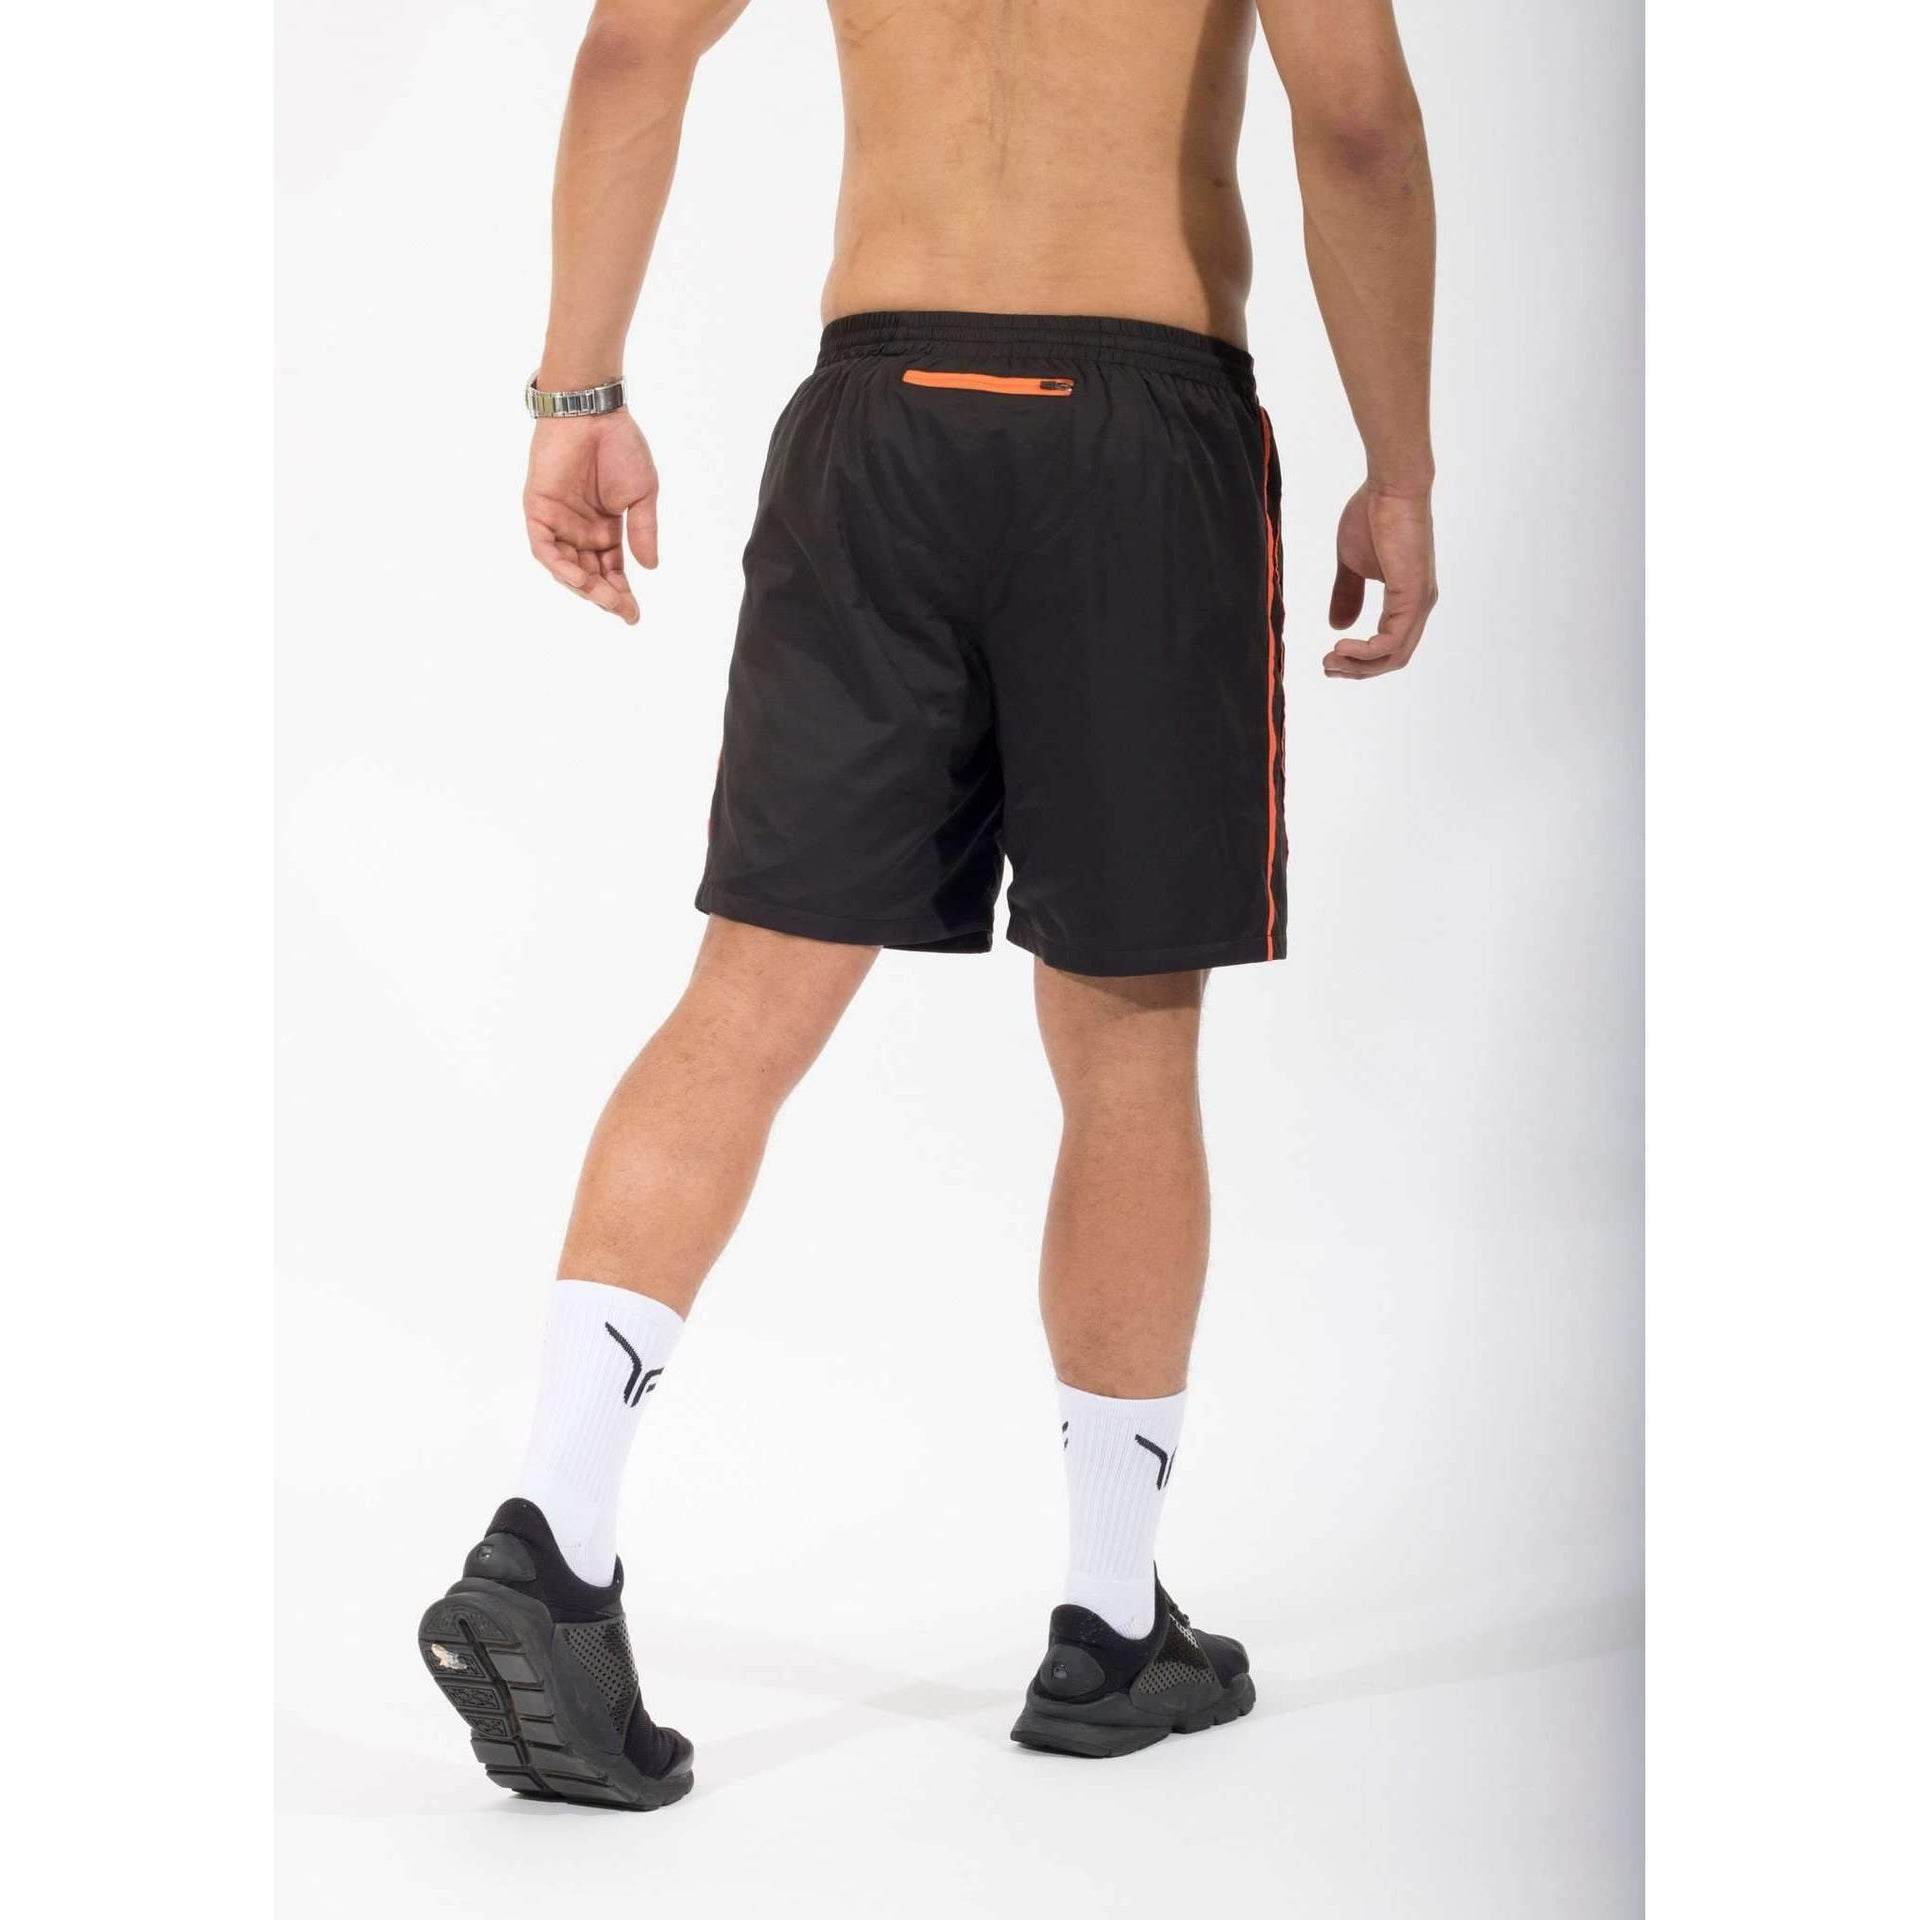 Versa Forma | VF Short - Black/Orange